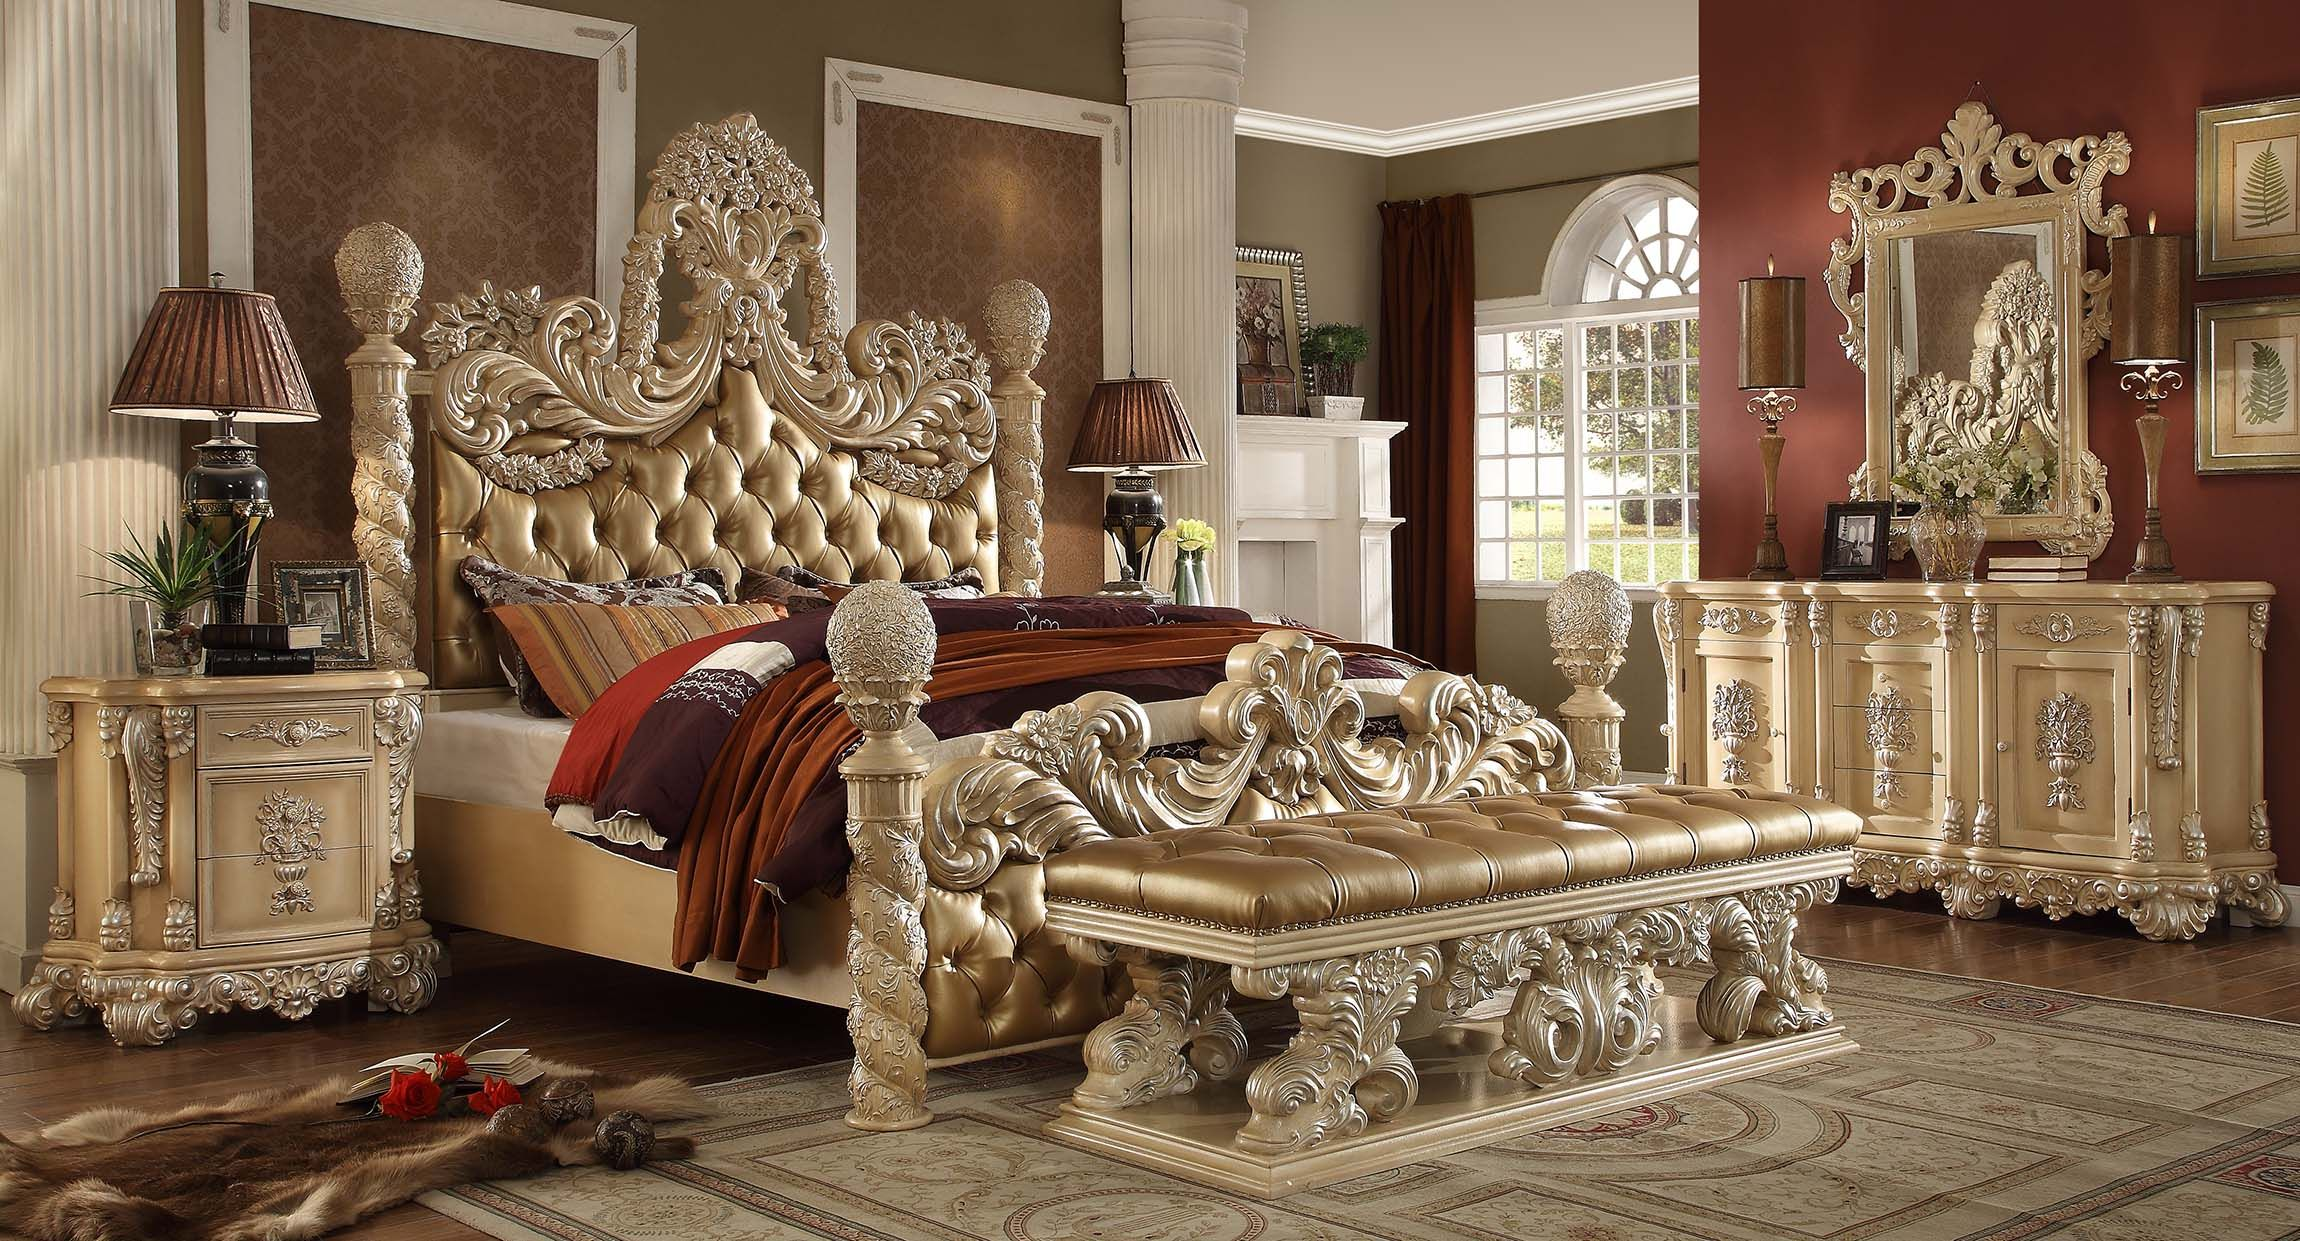 5 pc queen victoria renaissance style antique silver queen bedroom set with tufted padded carved headboard